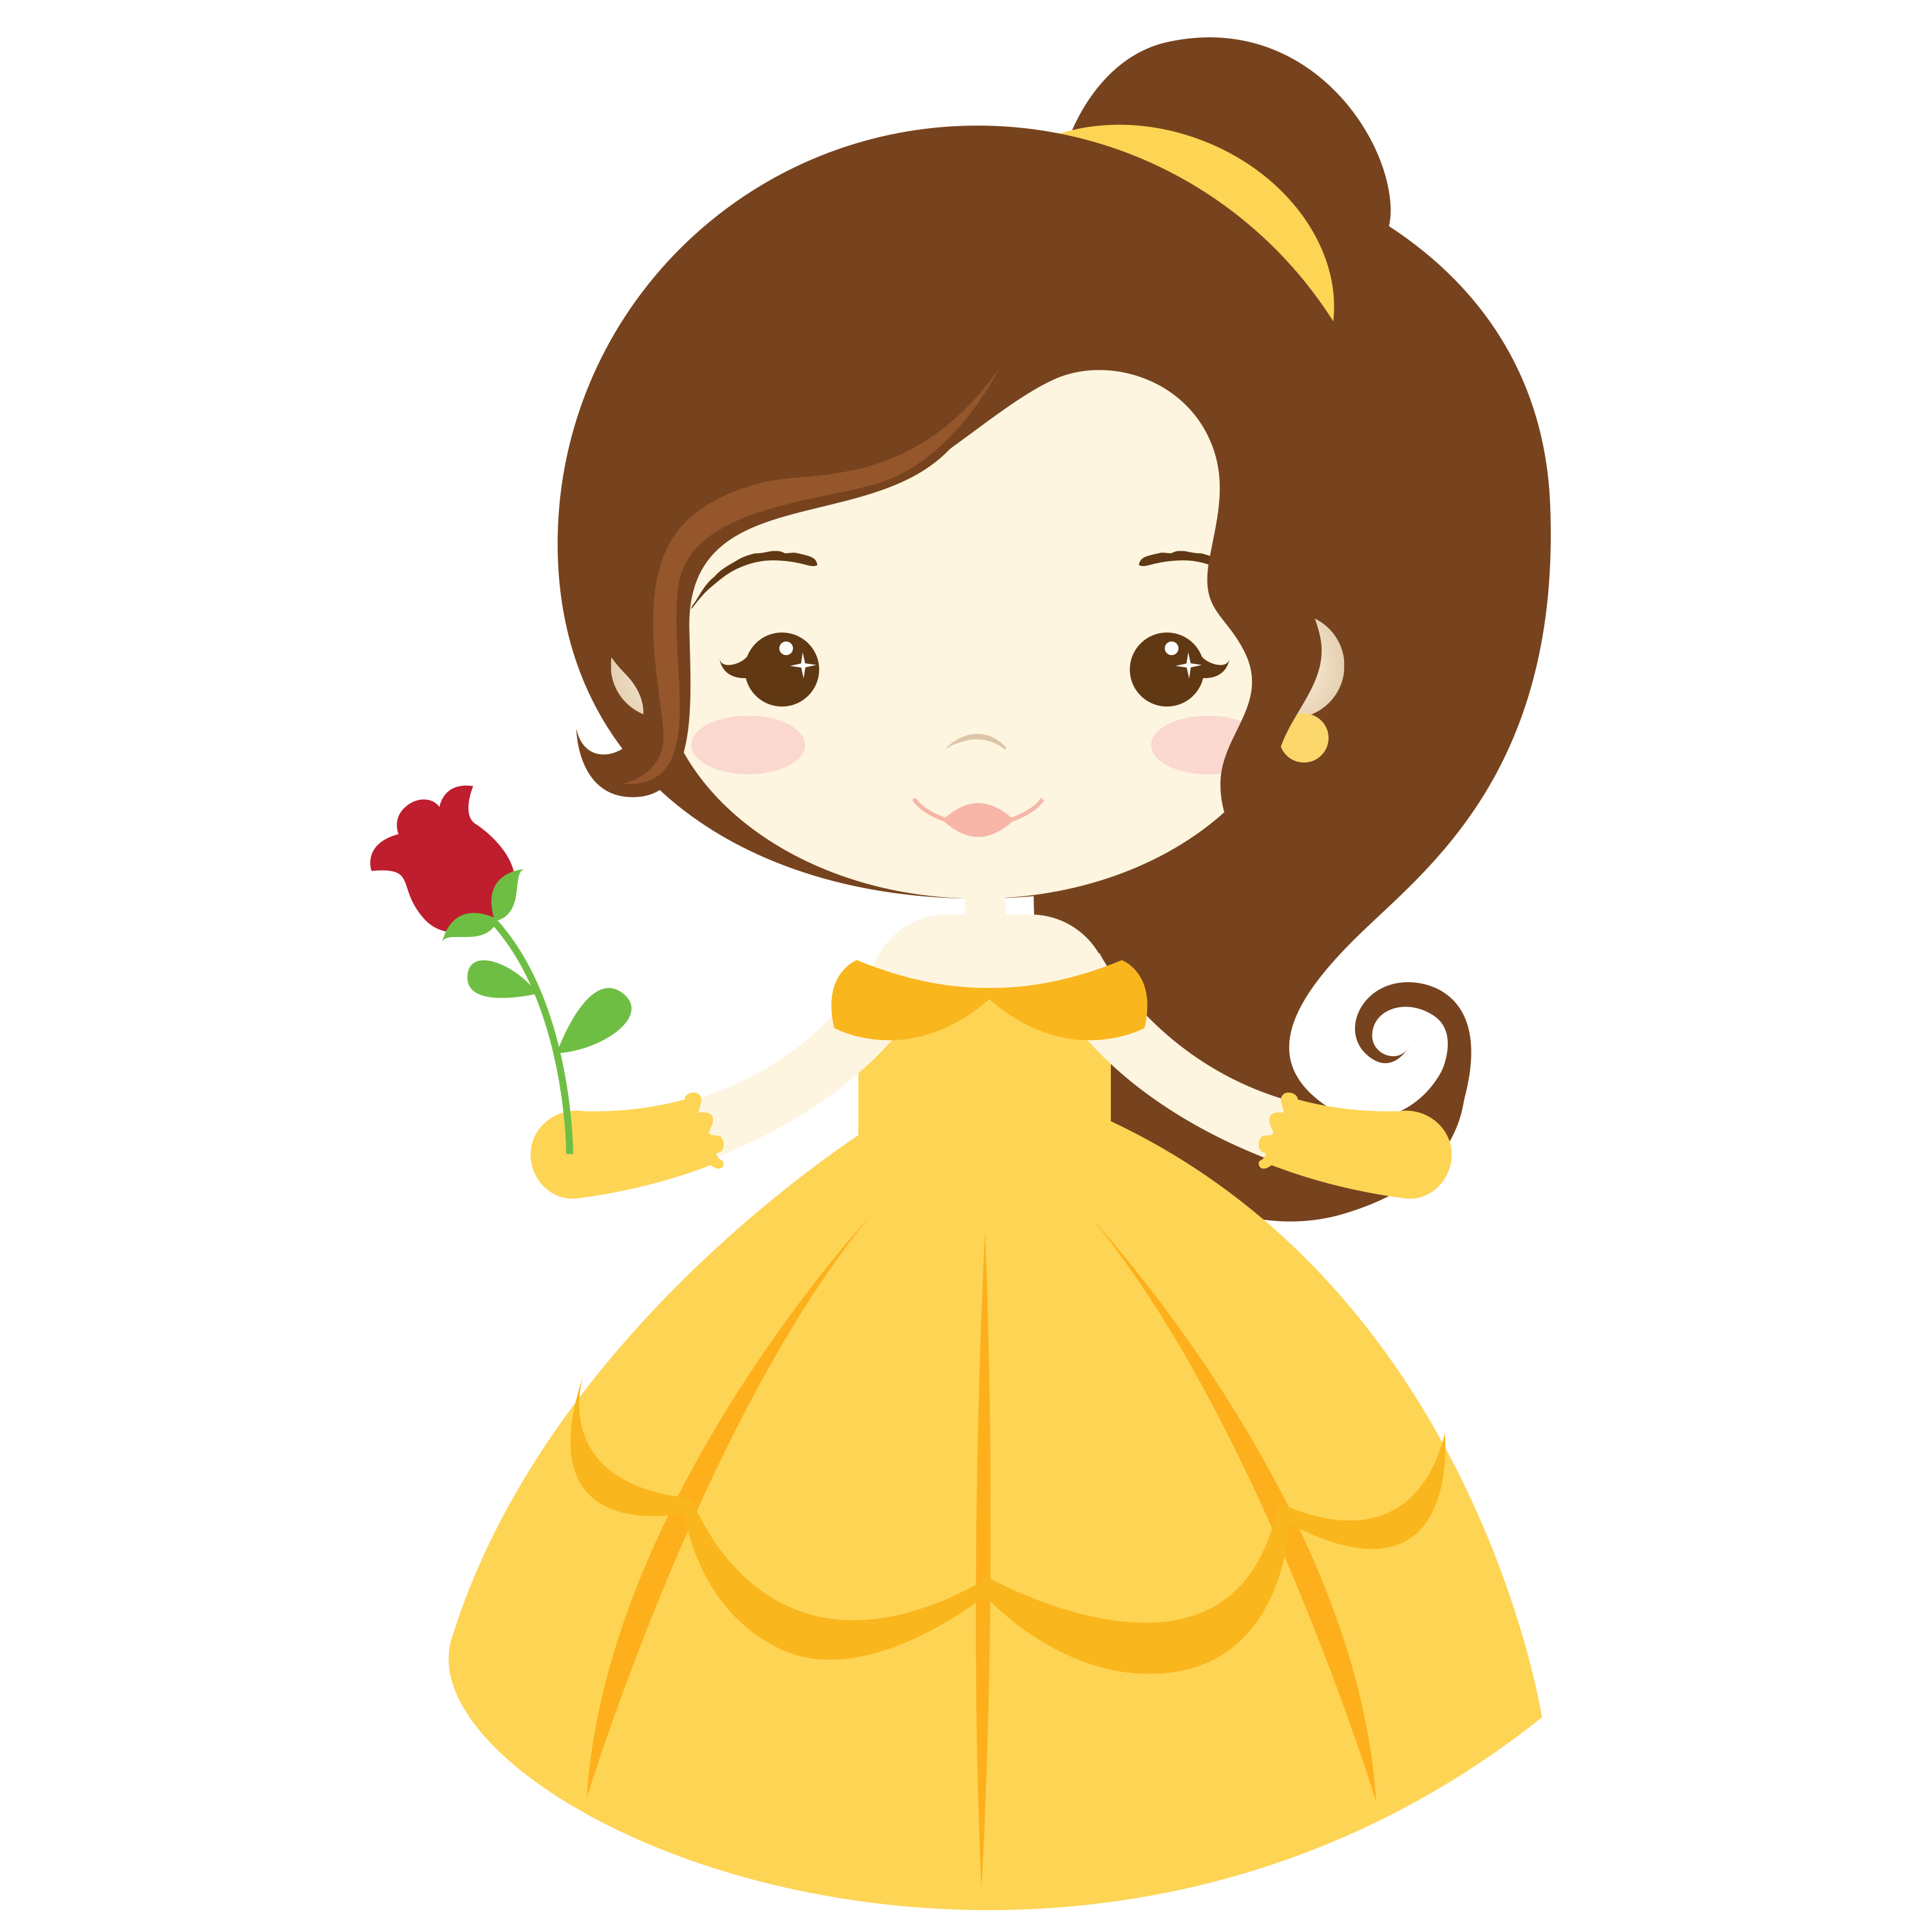 Disney Clipart Belle at GetDrawings.com.